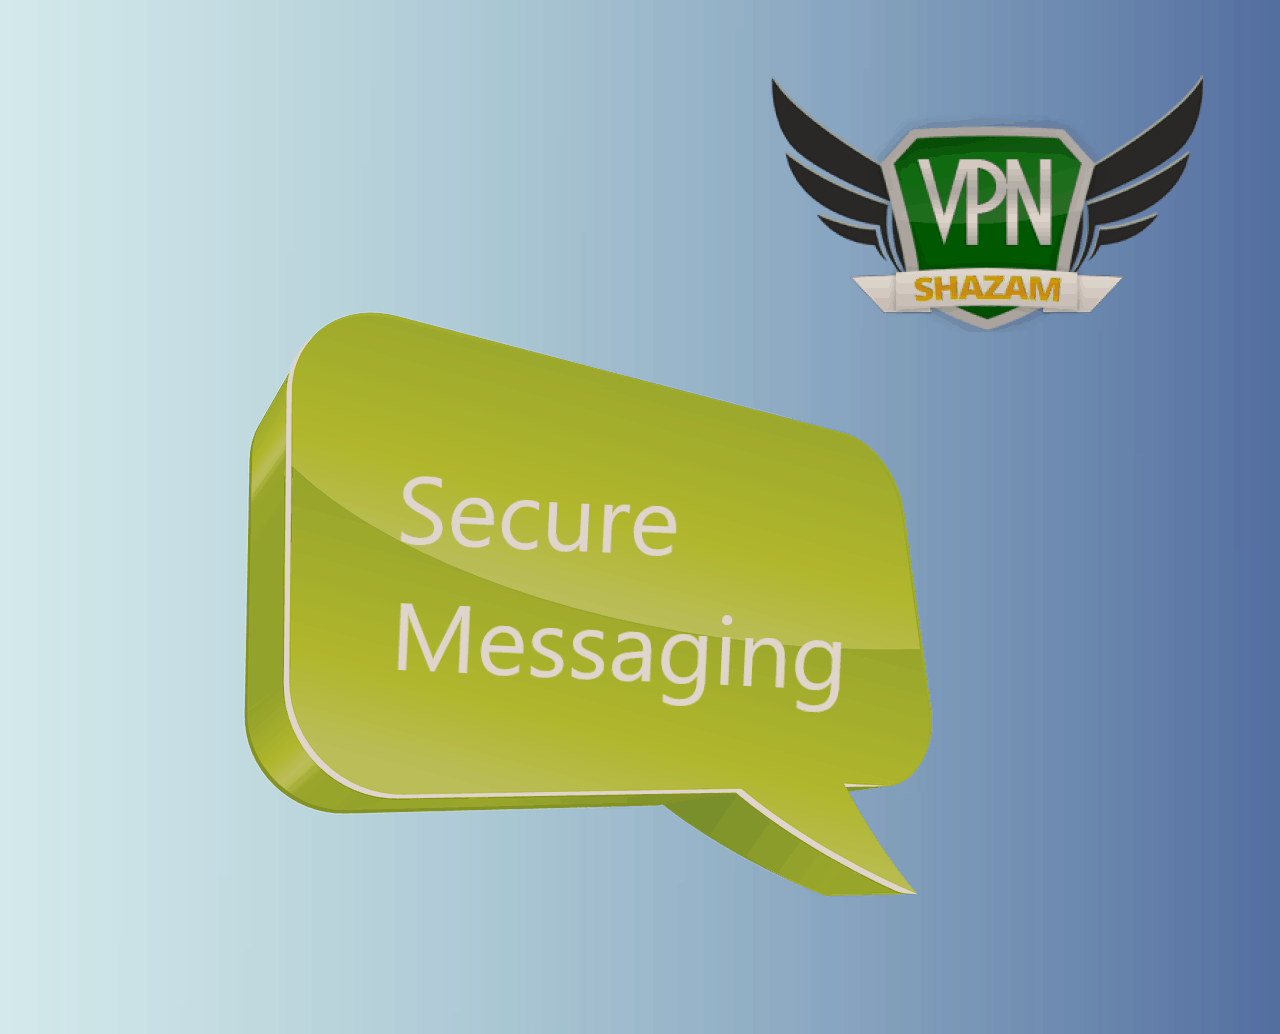 All About Secure Messaging